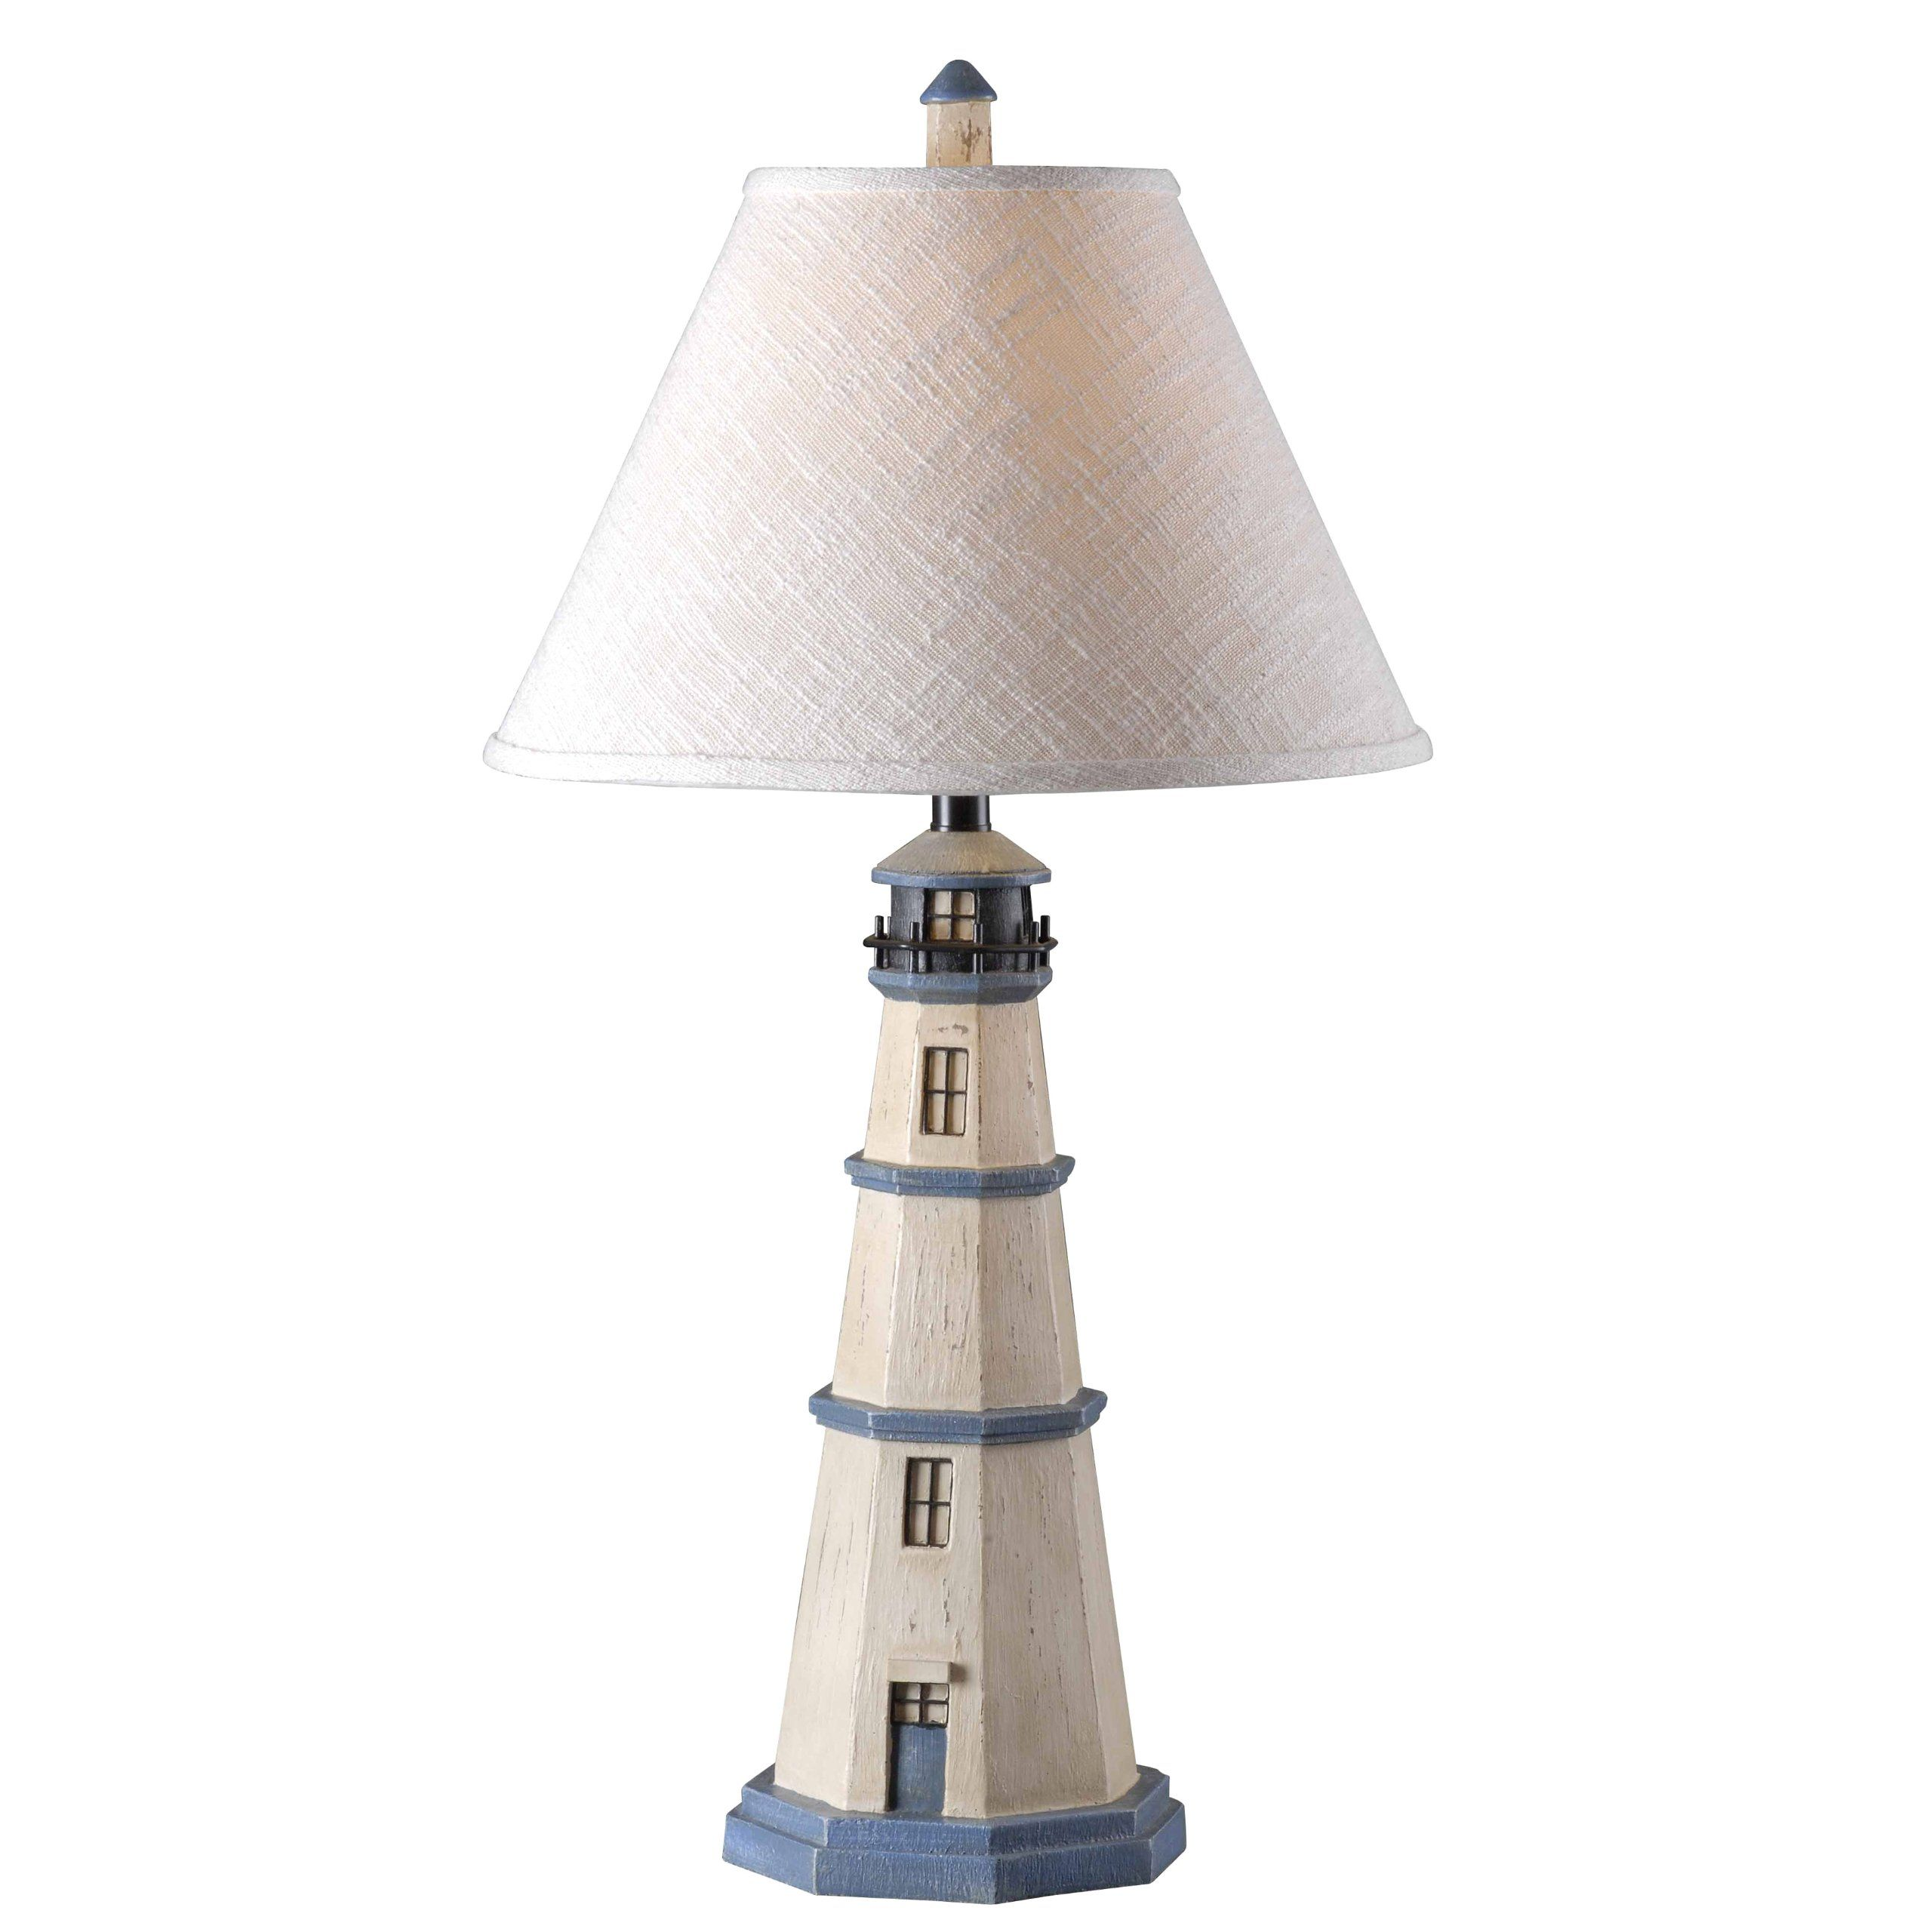 Kenroy Home 20140AW Nantucket Table Lamp, Antique White